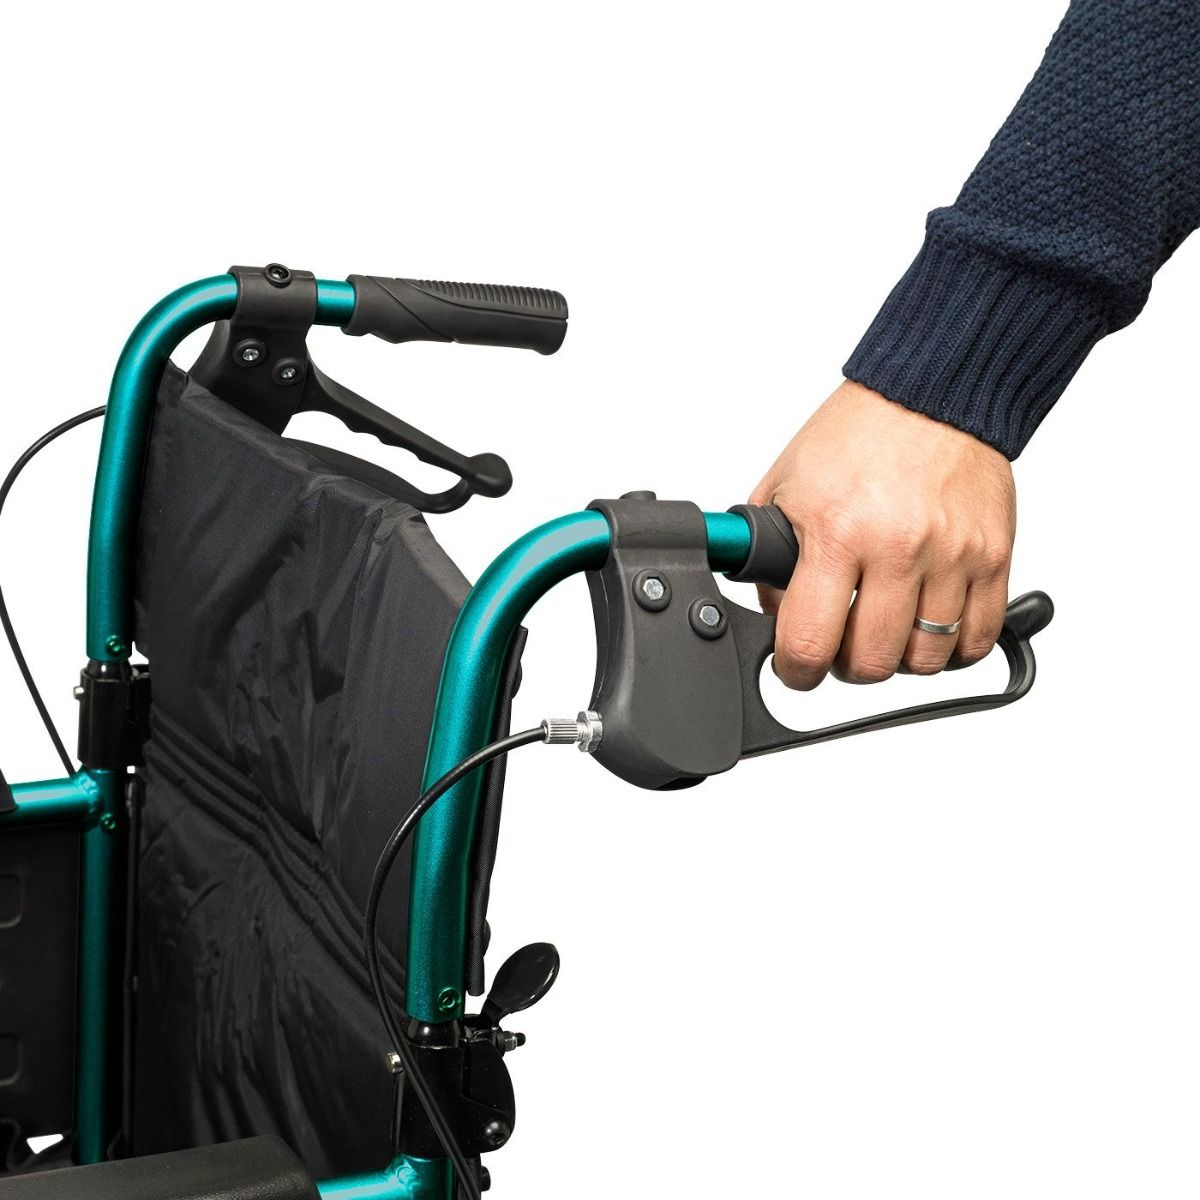 The Days Standard Width Escape Lite Wheelchair features attendant-operated brakes